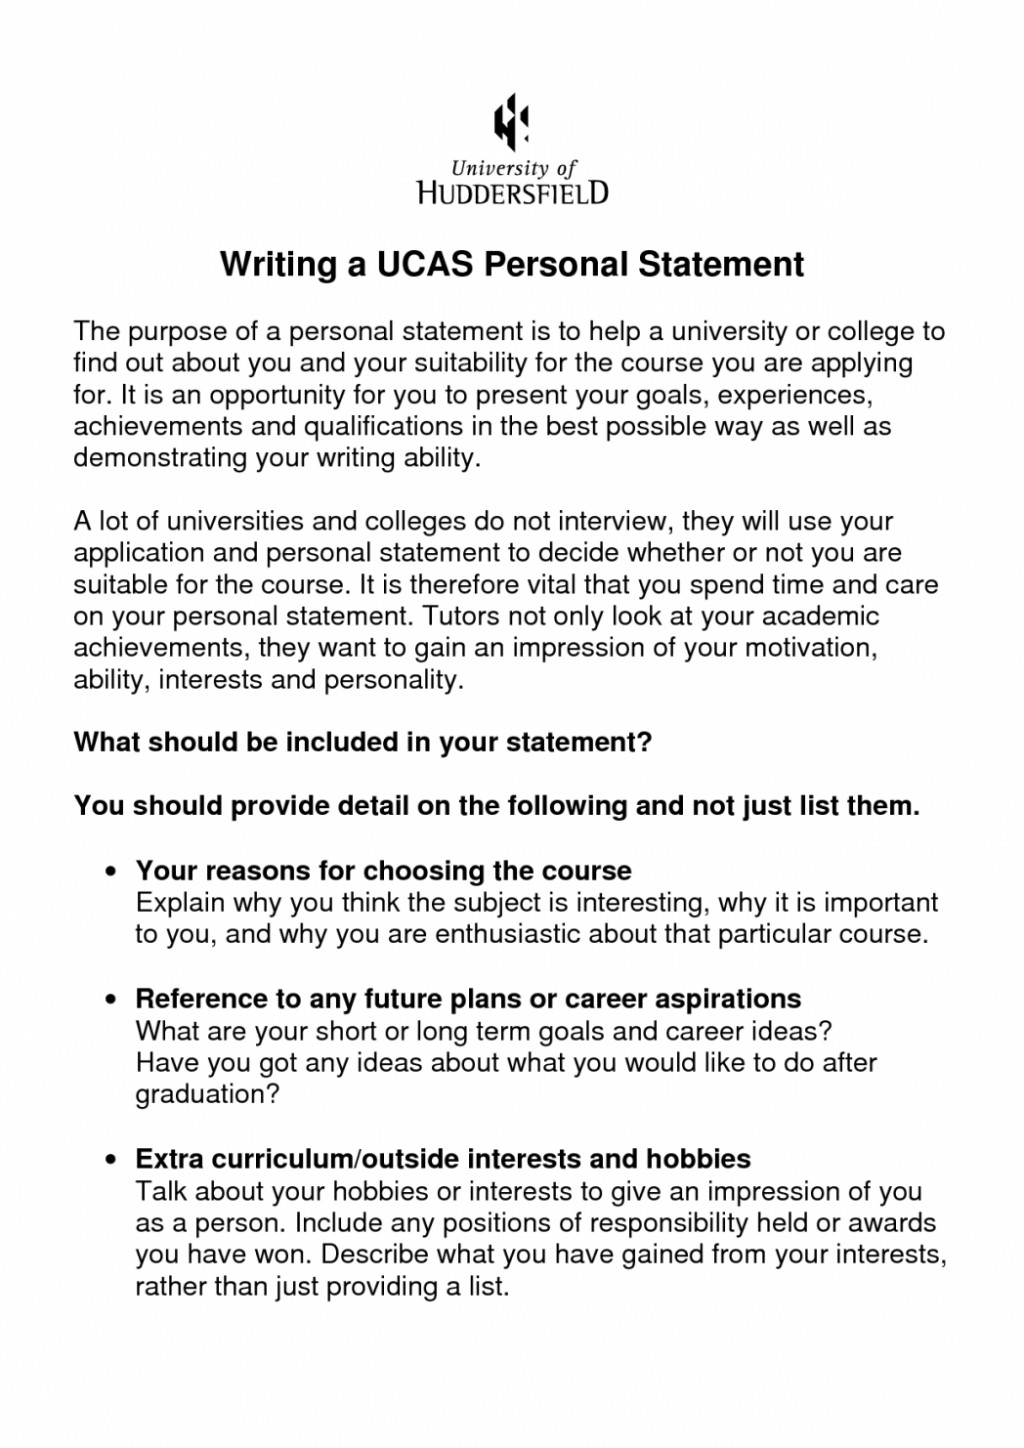 014 Essay Example College Goals Outline Plan Career Personal Statement Examples Ucas 0lt Life Educational Student And Aspirations My Academic Objectives 1048x1482 Whysmportant Frightening Why Is Important In Our Large